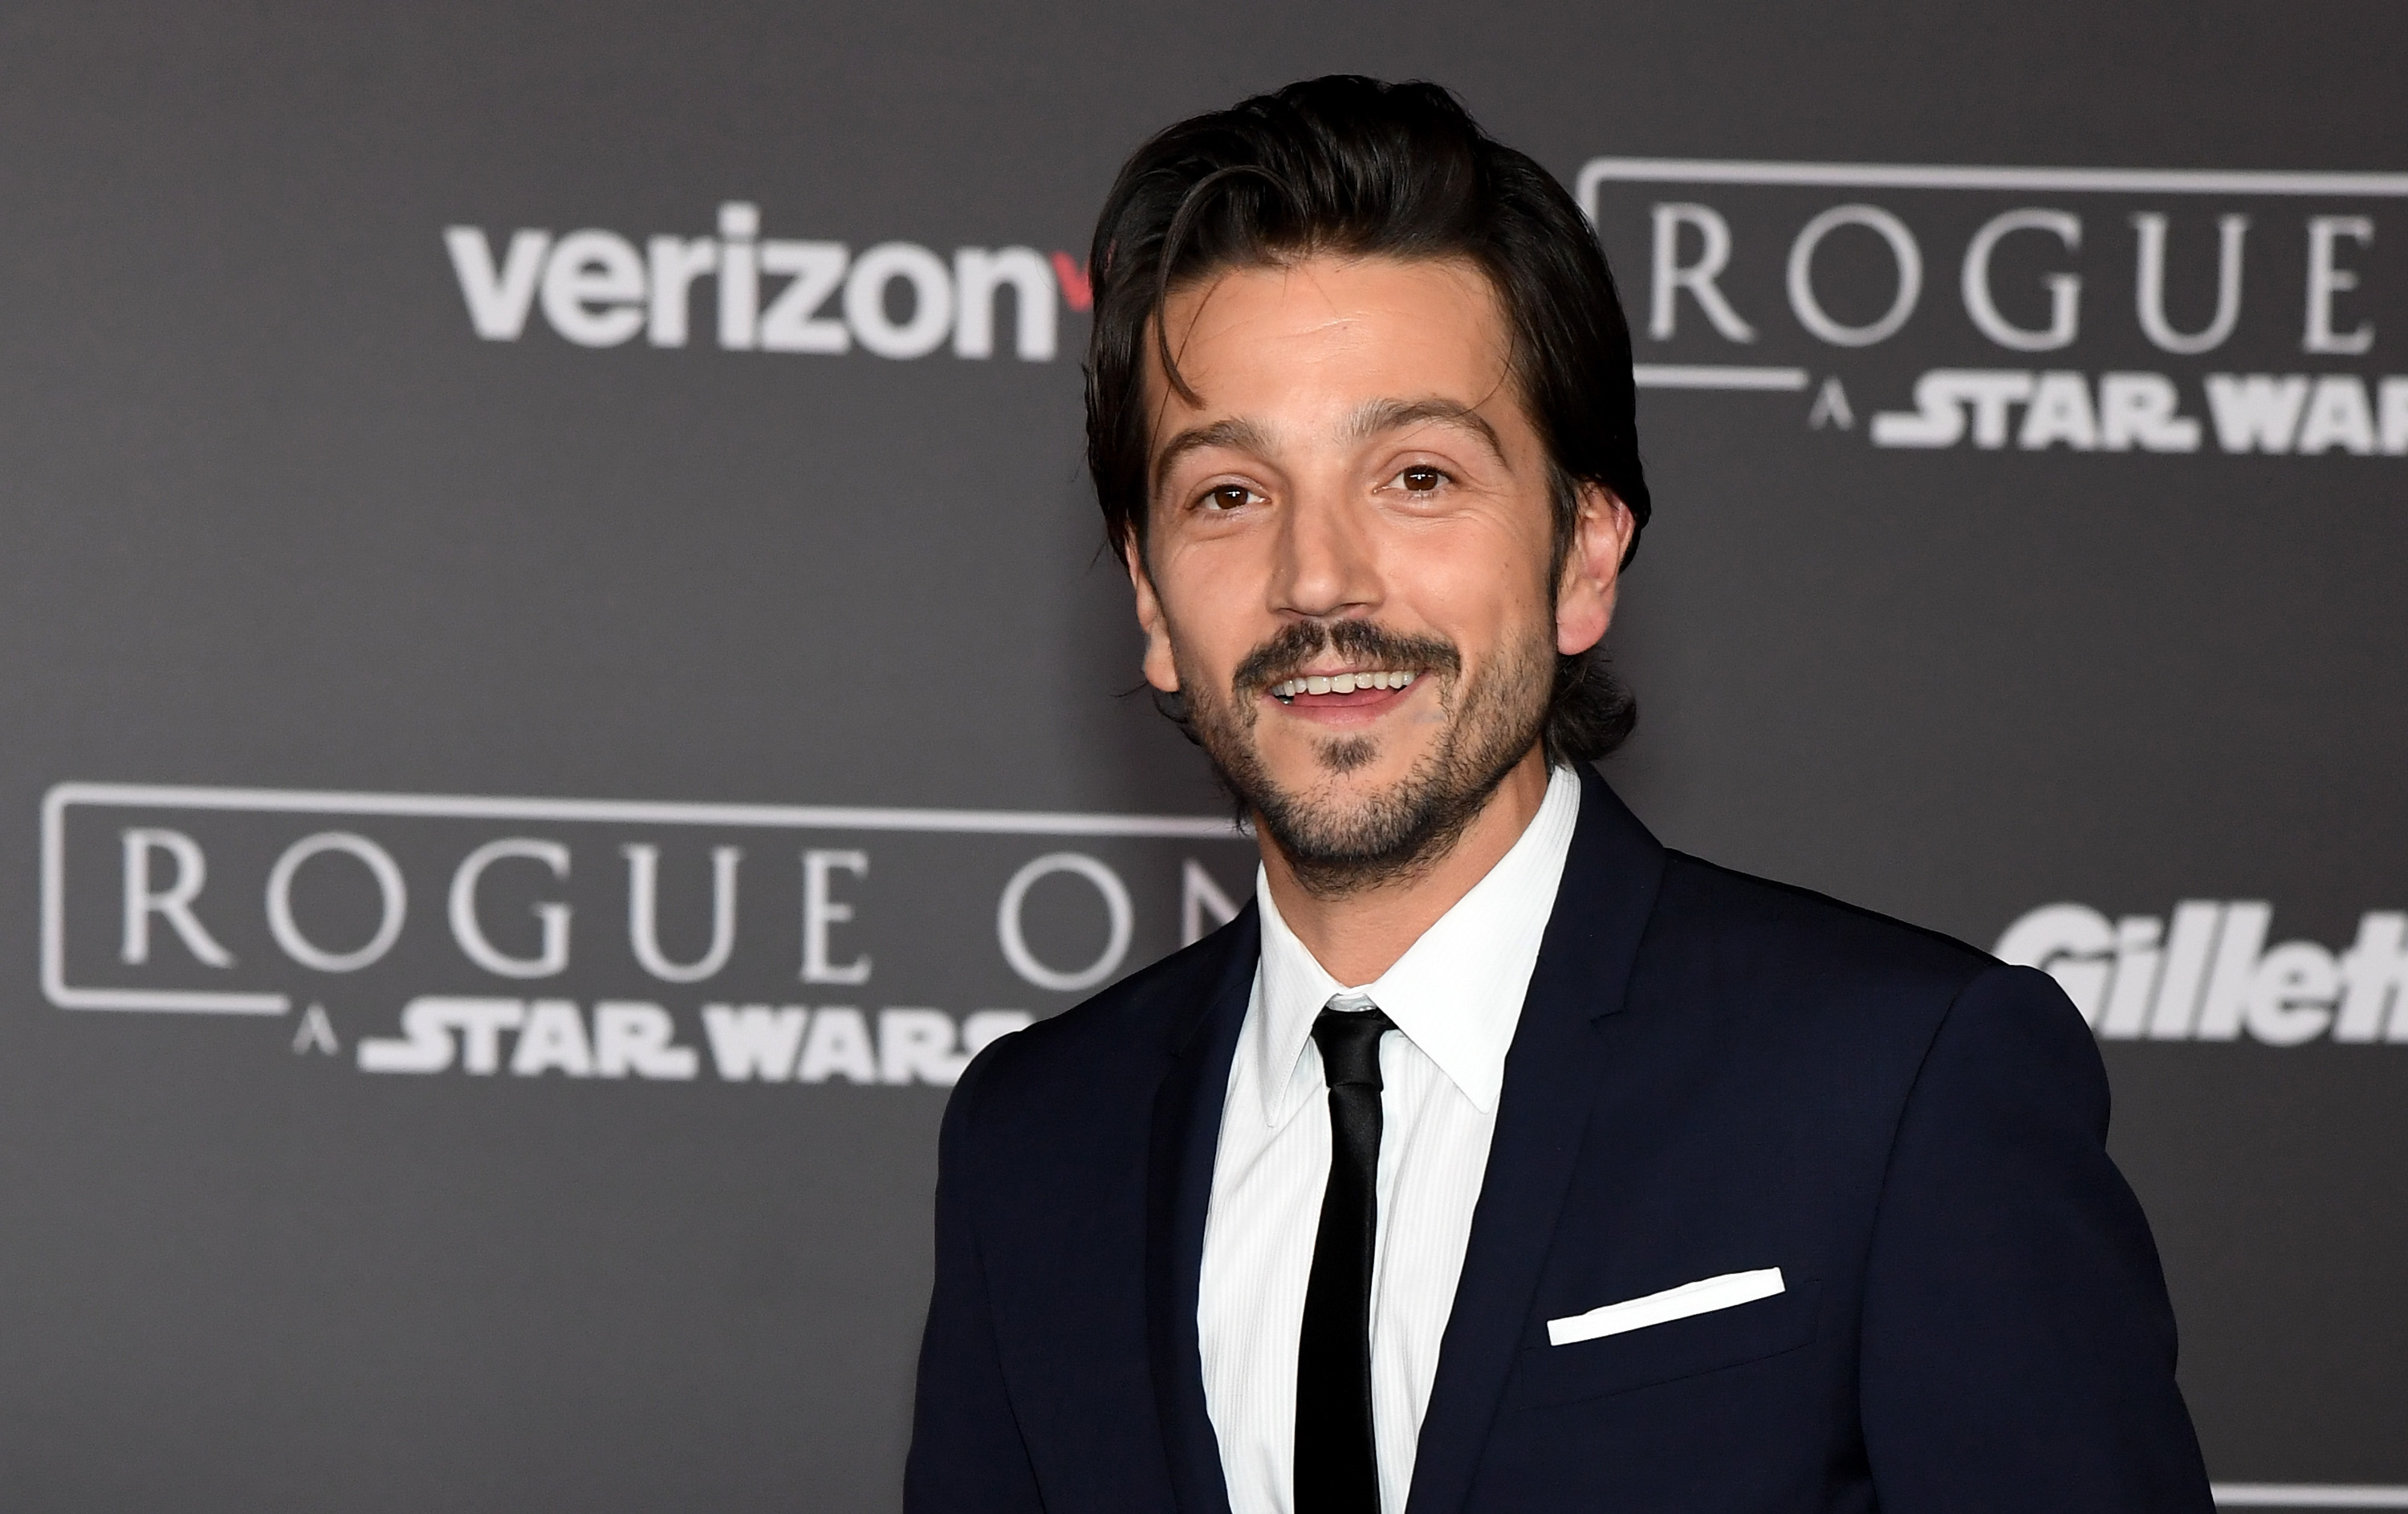 Diego Luna Turned Down an Offer to Serve in Mexico's Senate